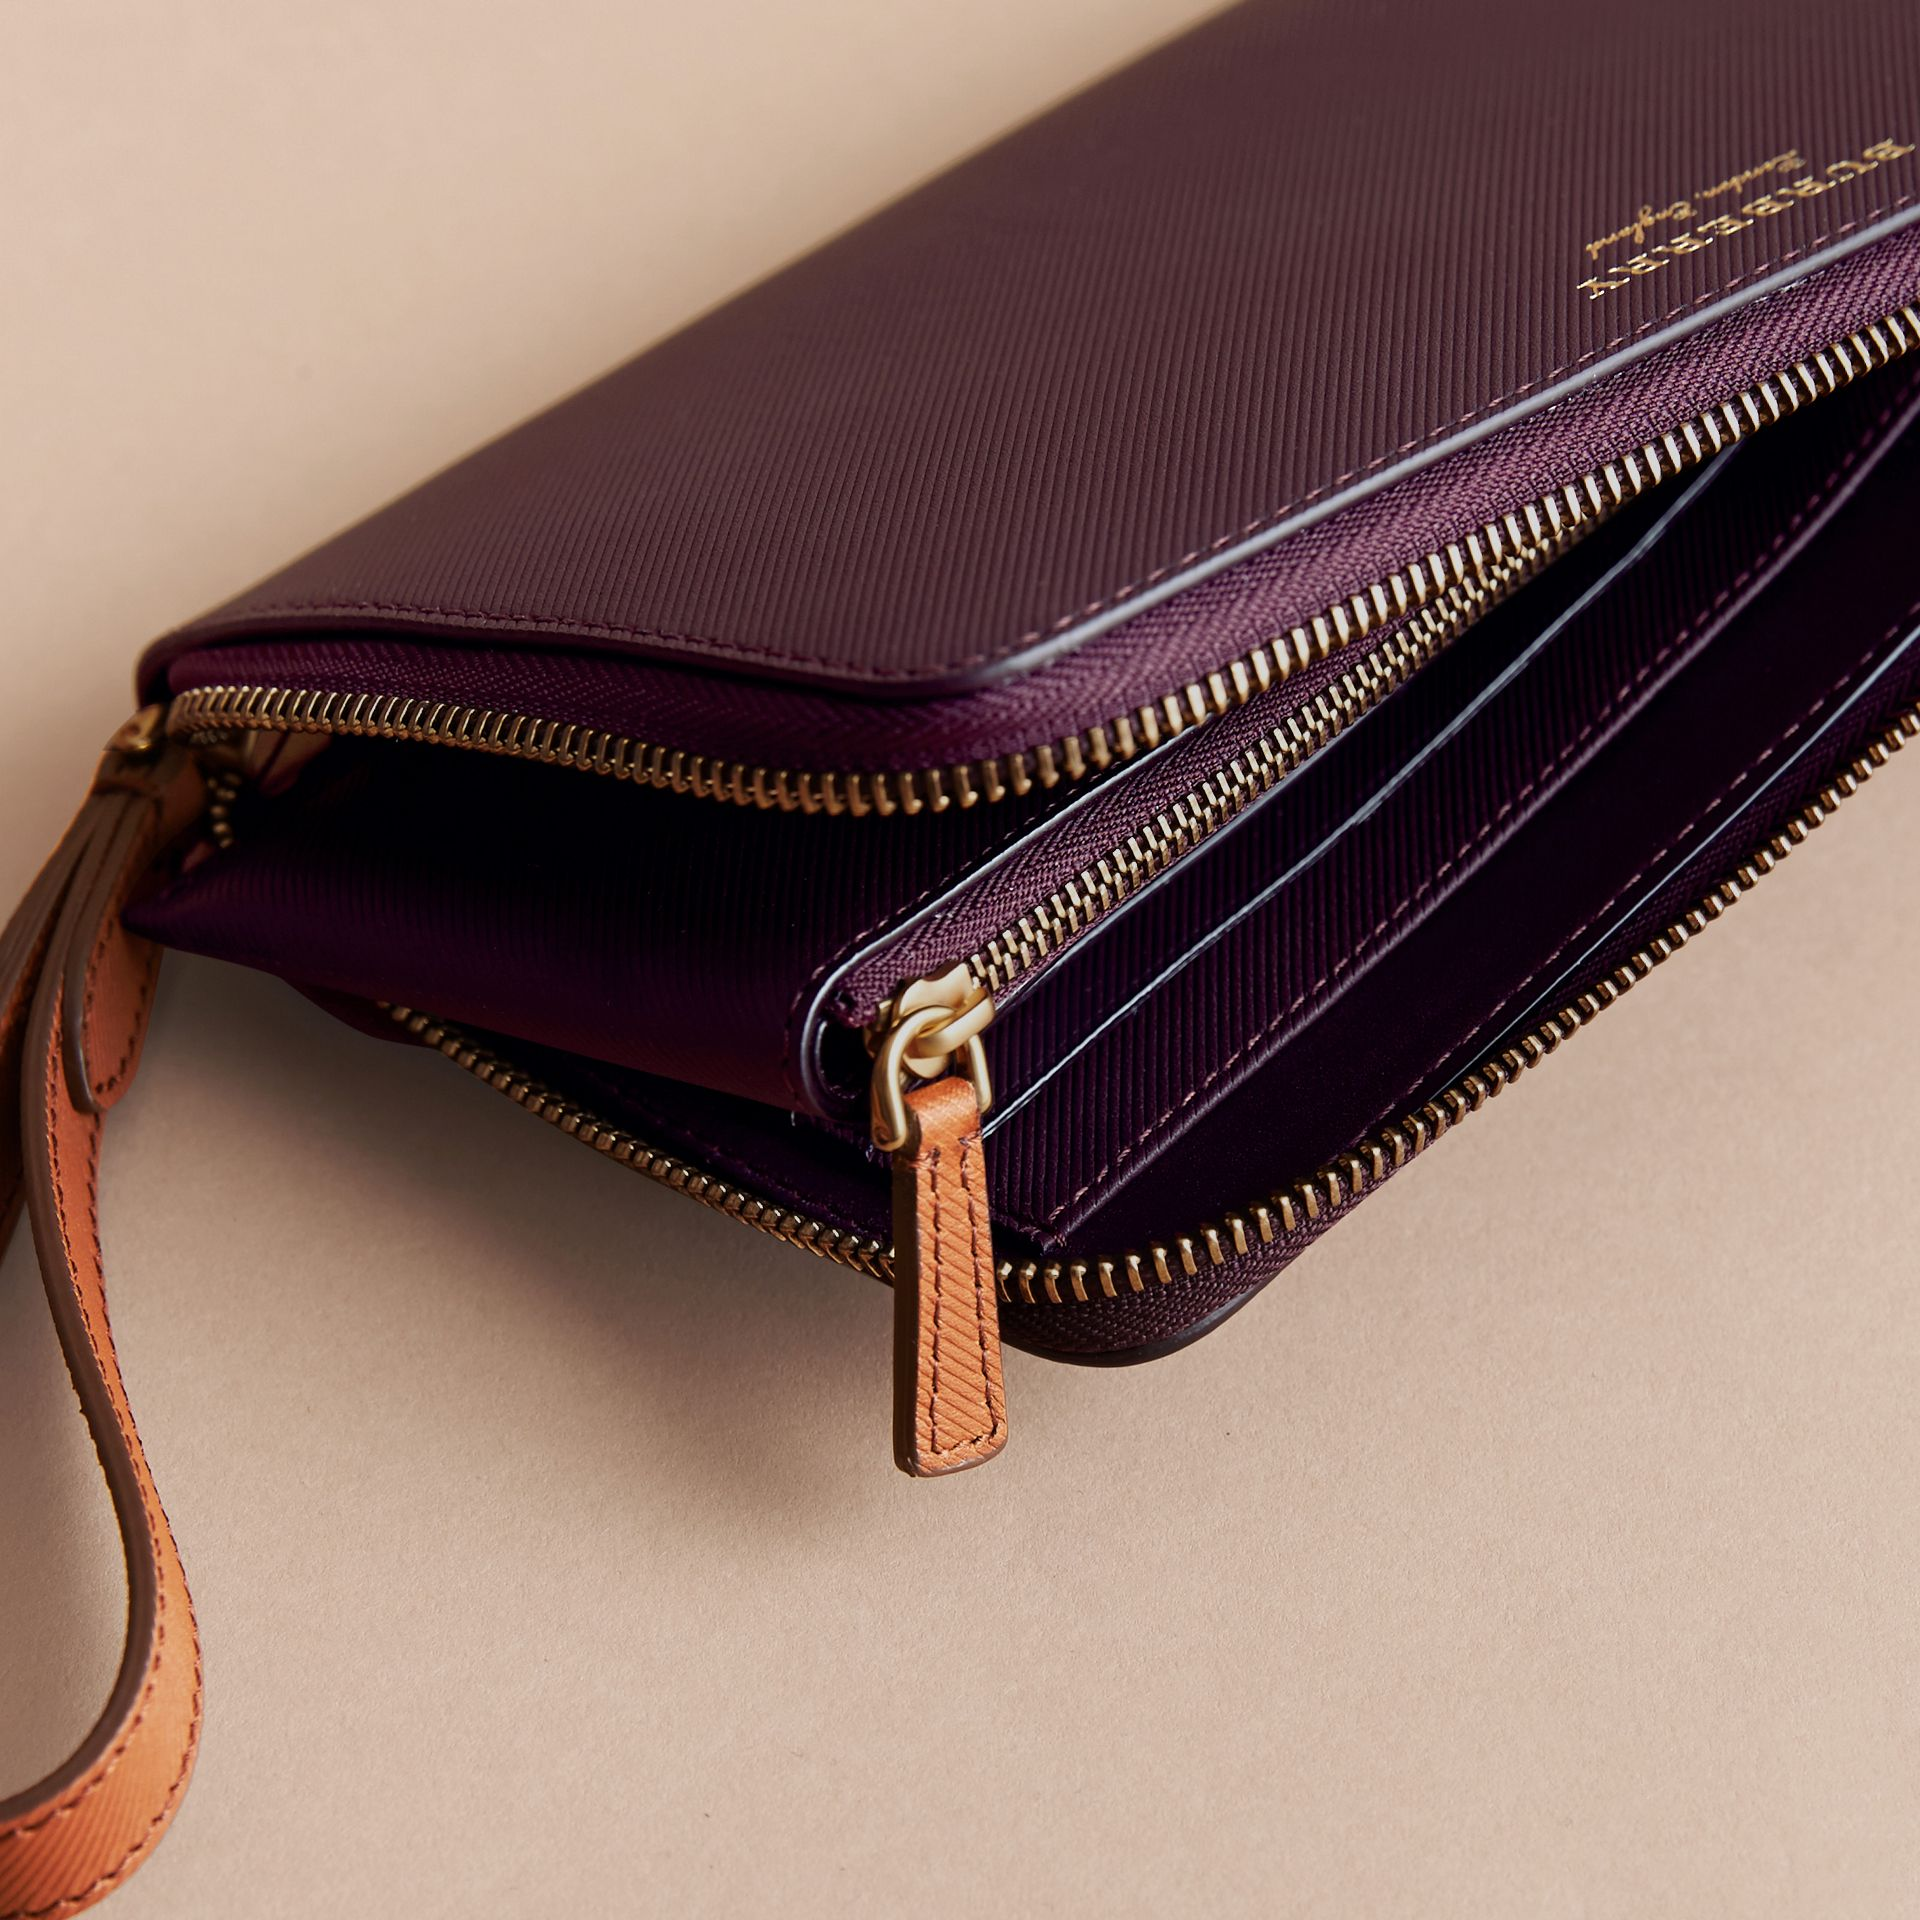 Two-tone Trench Leather Travel Wallet in Wine - Men | Burberry Hong Kong - gallery image 4